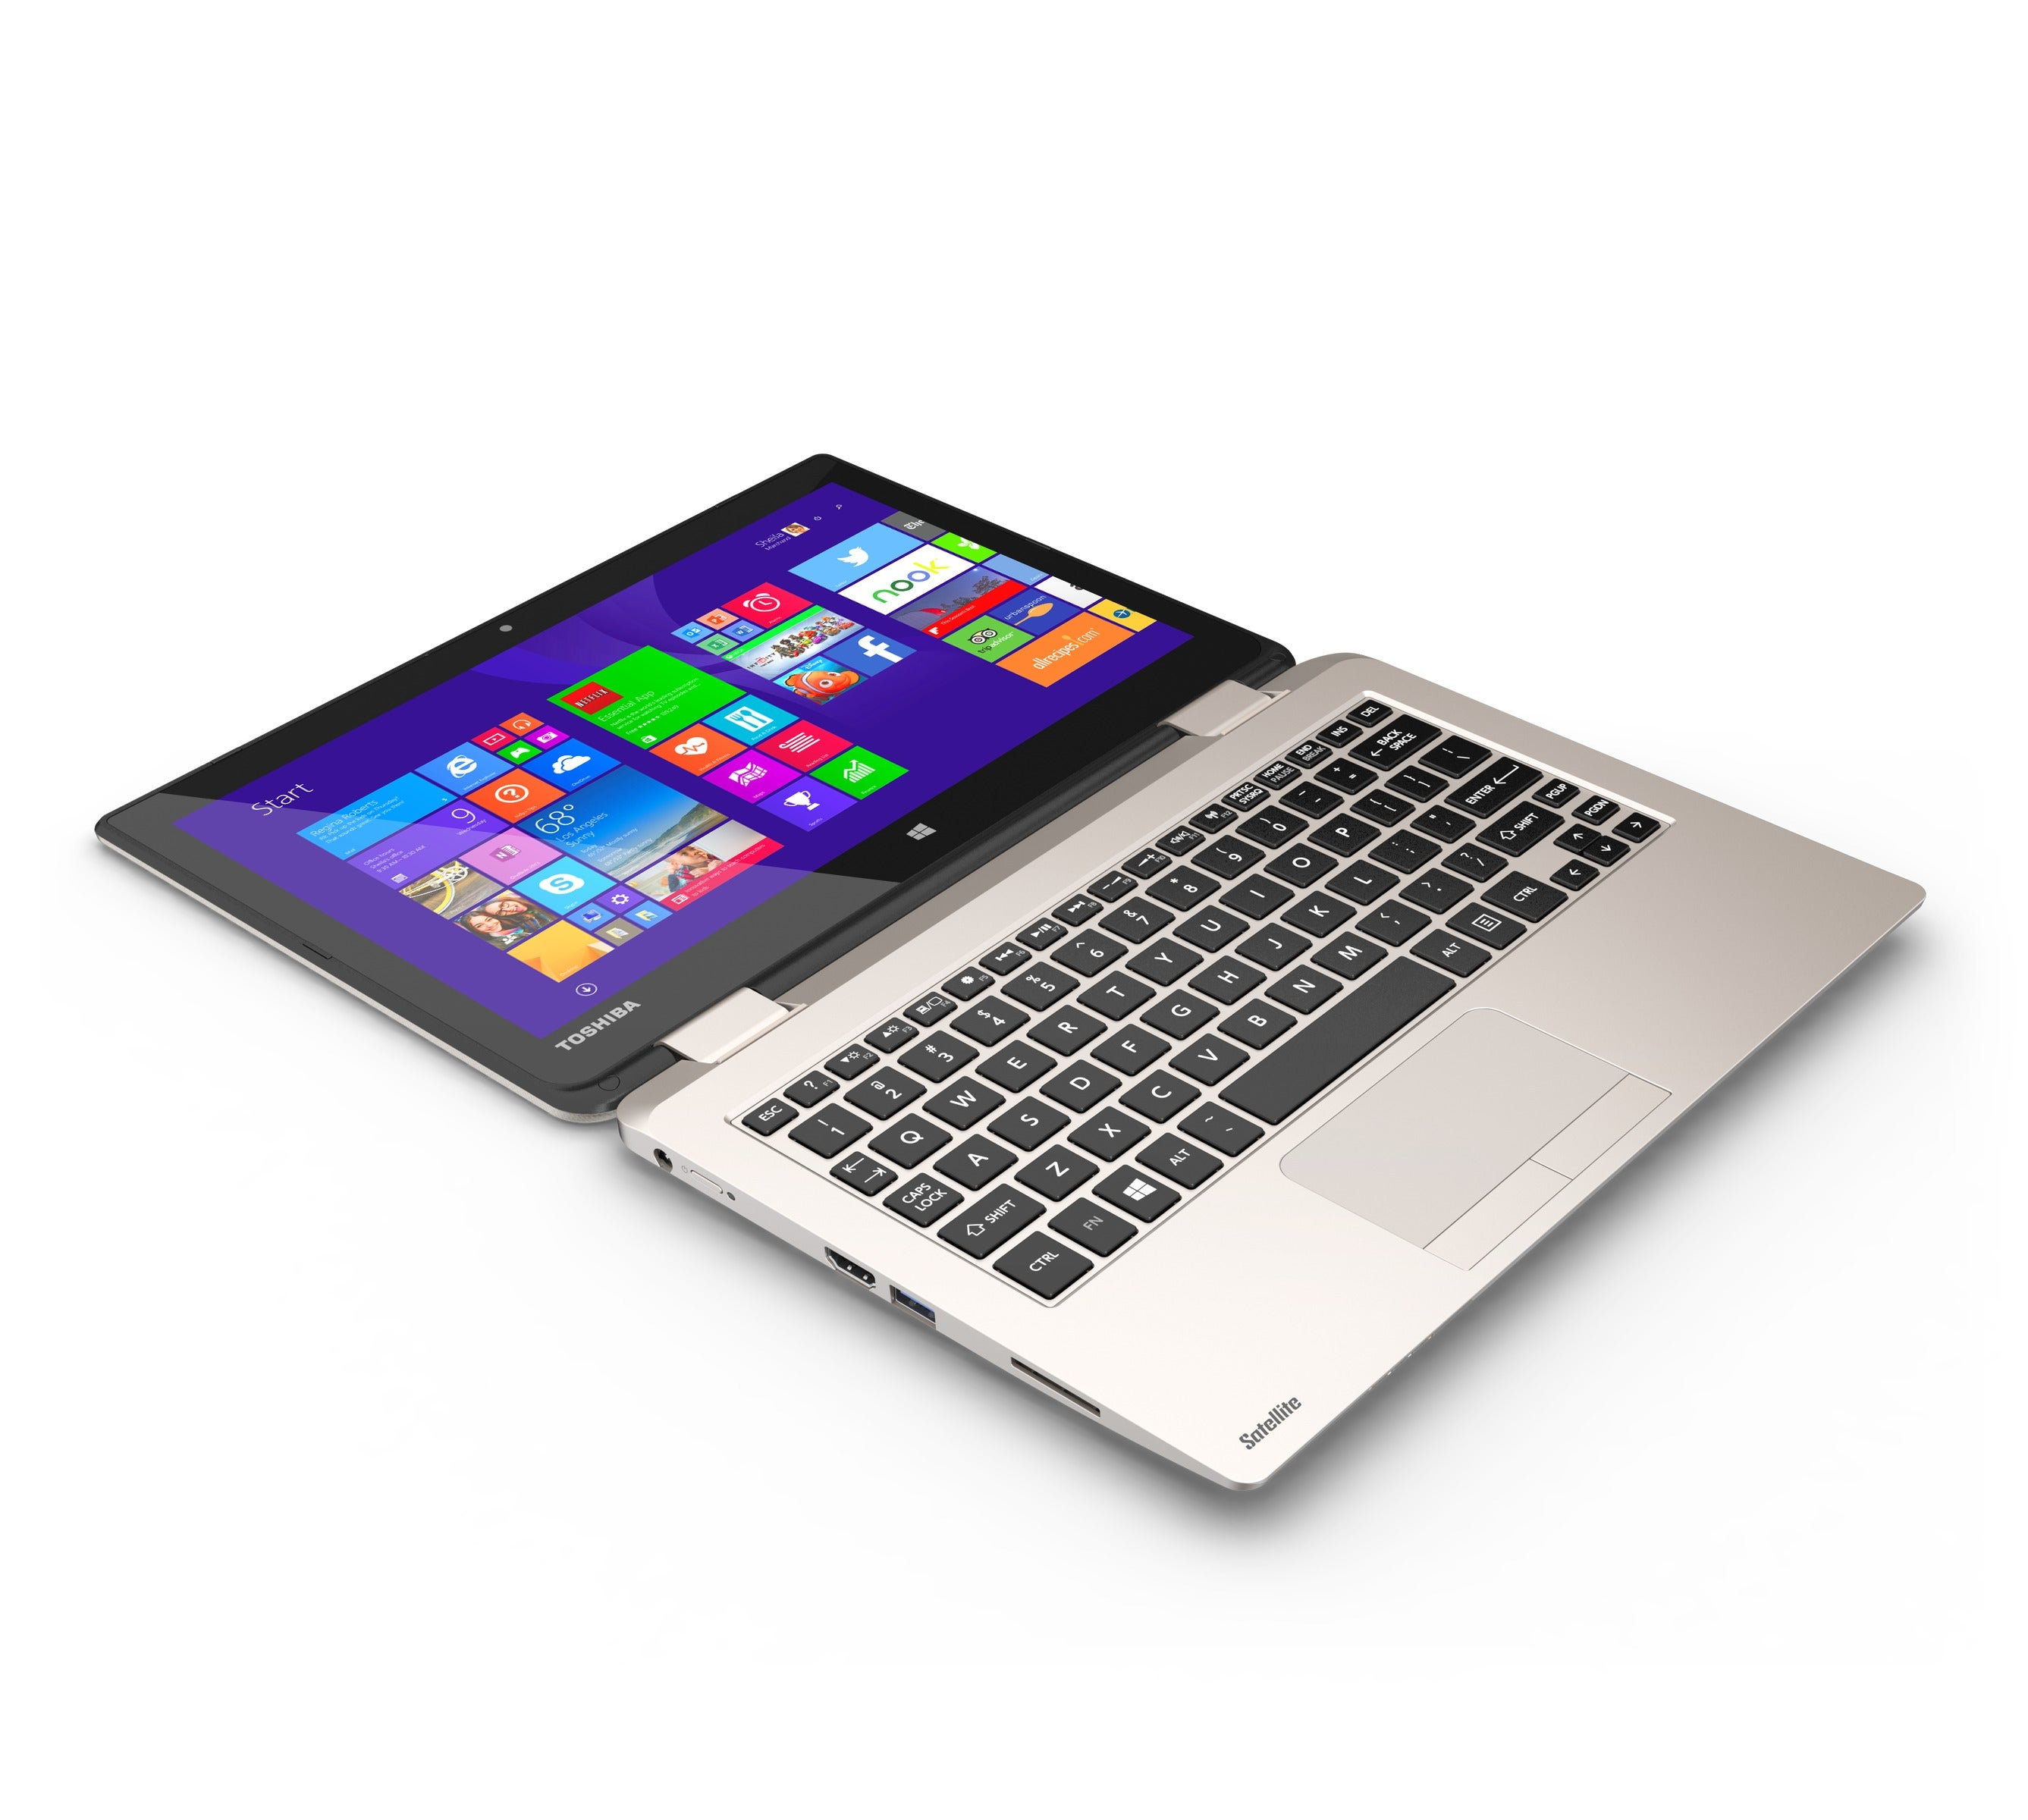 Toshiba Radius 11: A Neat Convertible With Bags of Storage on the Cheap